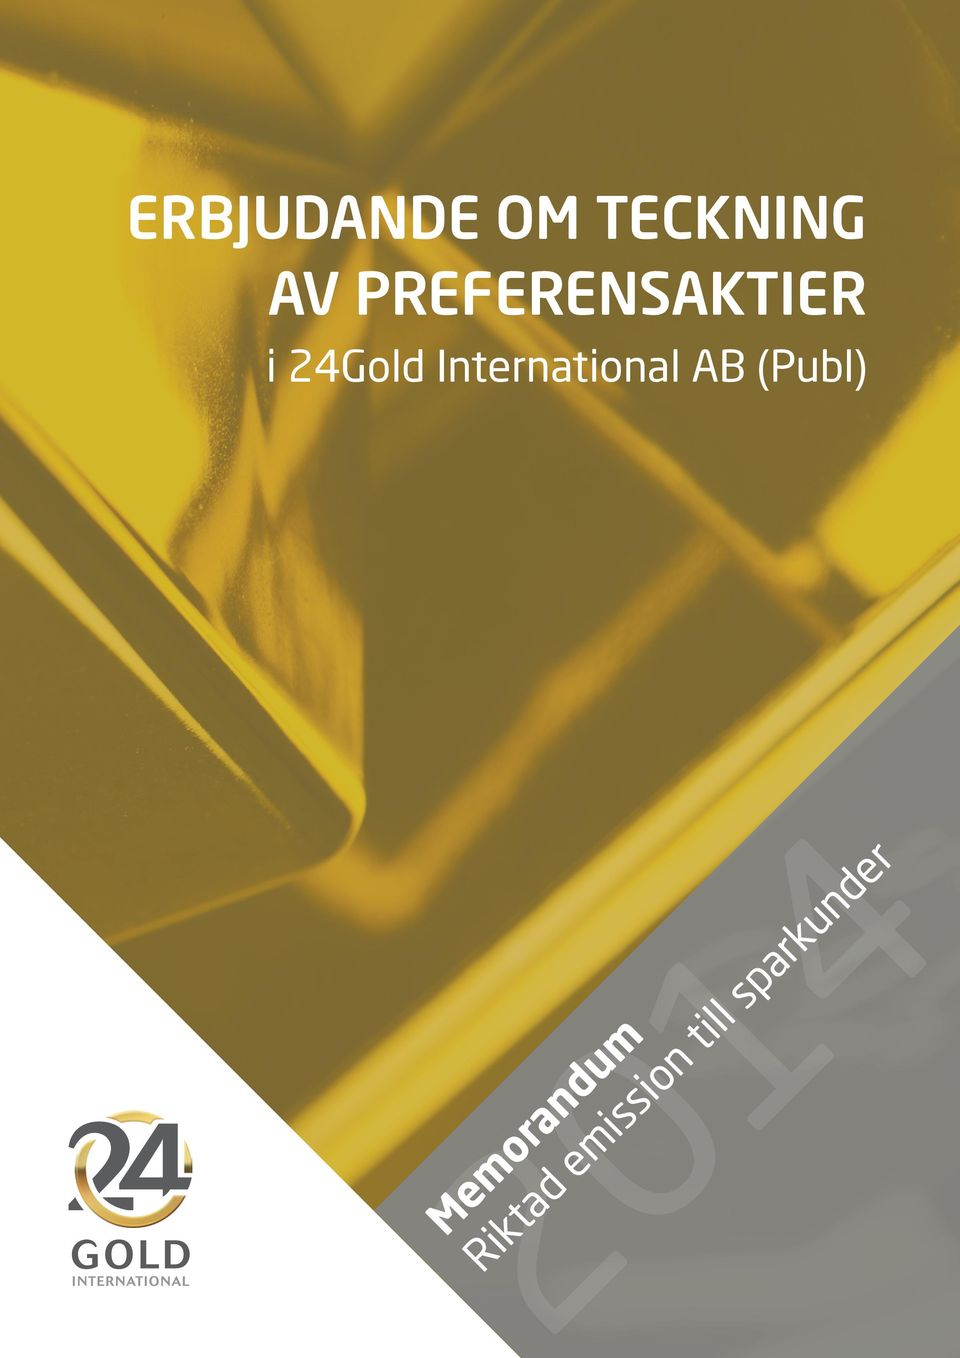 International AB (Publ) 2014